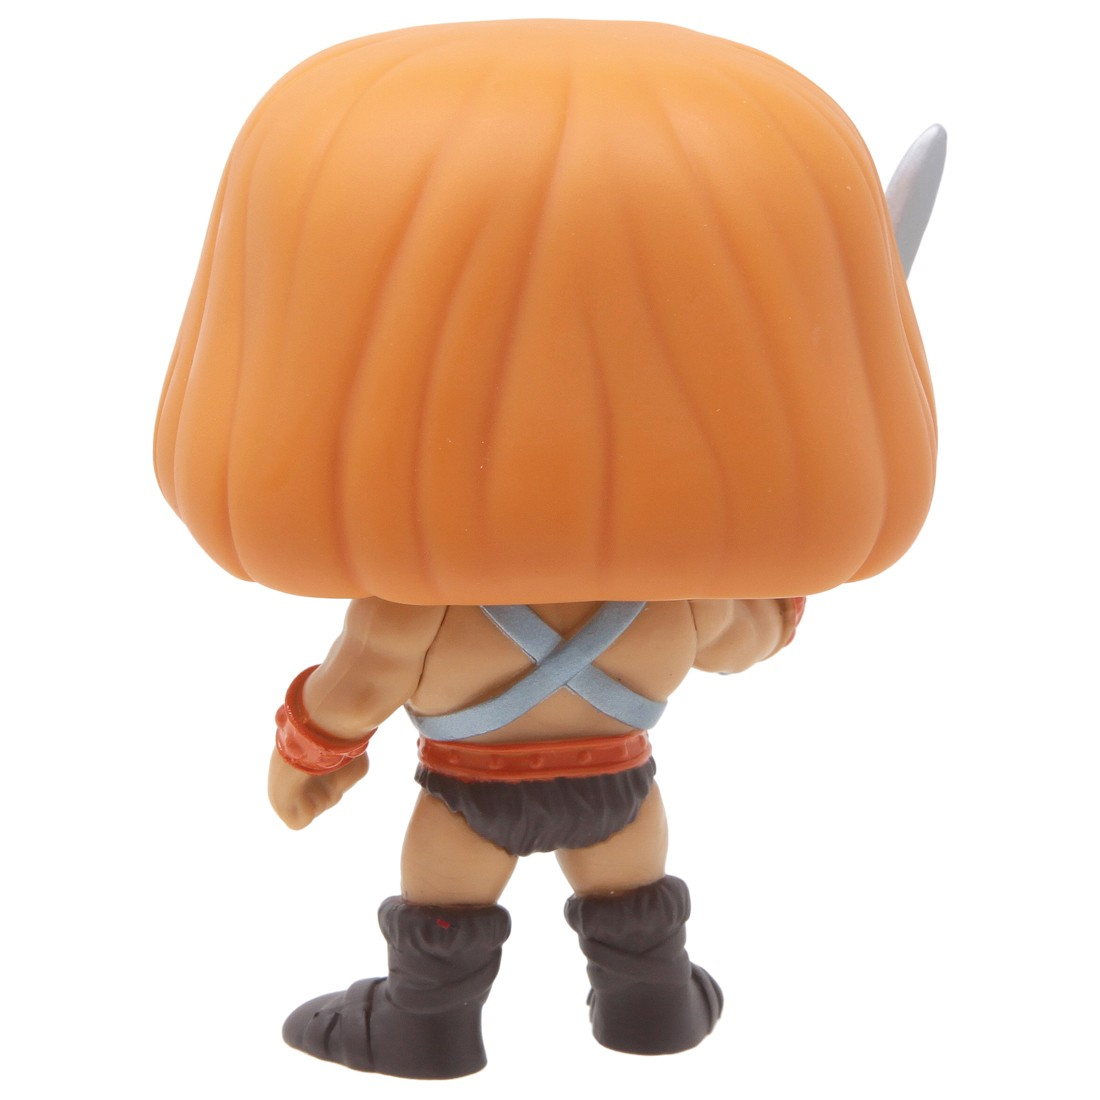 He-Man #991 - Master of The Universe - Funko Pop! Television